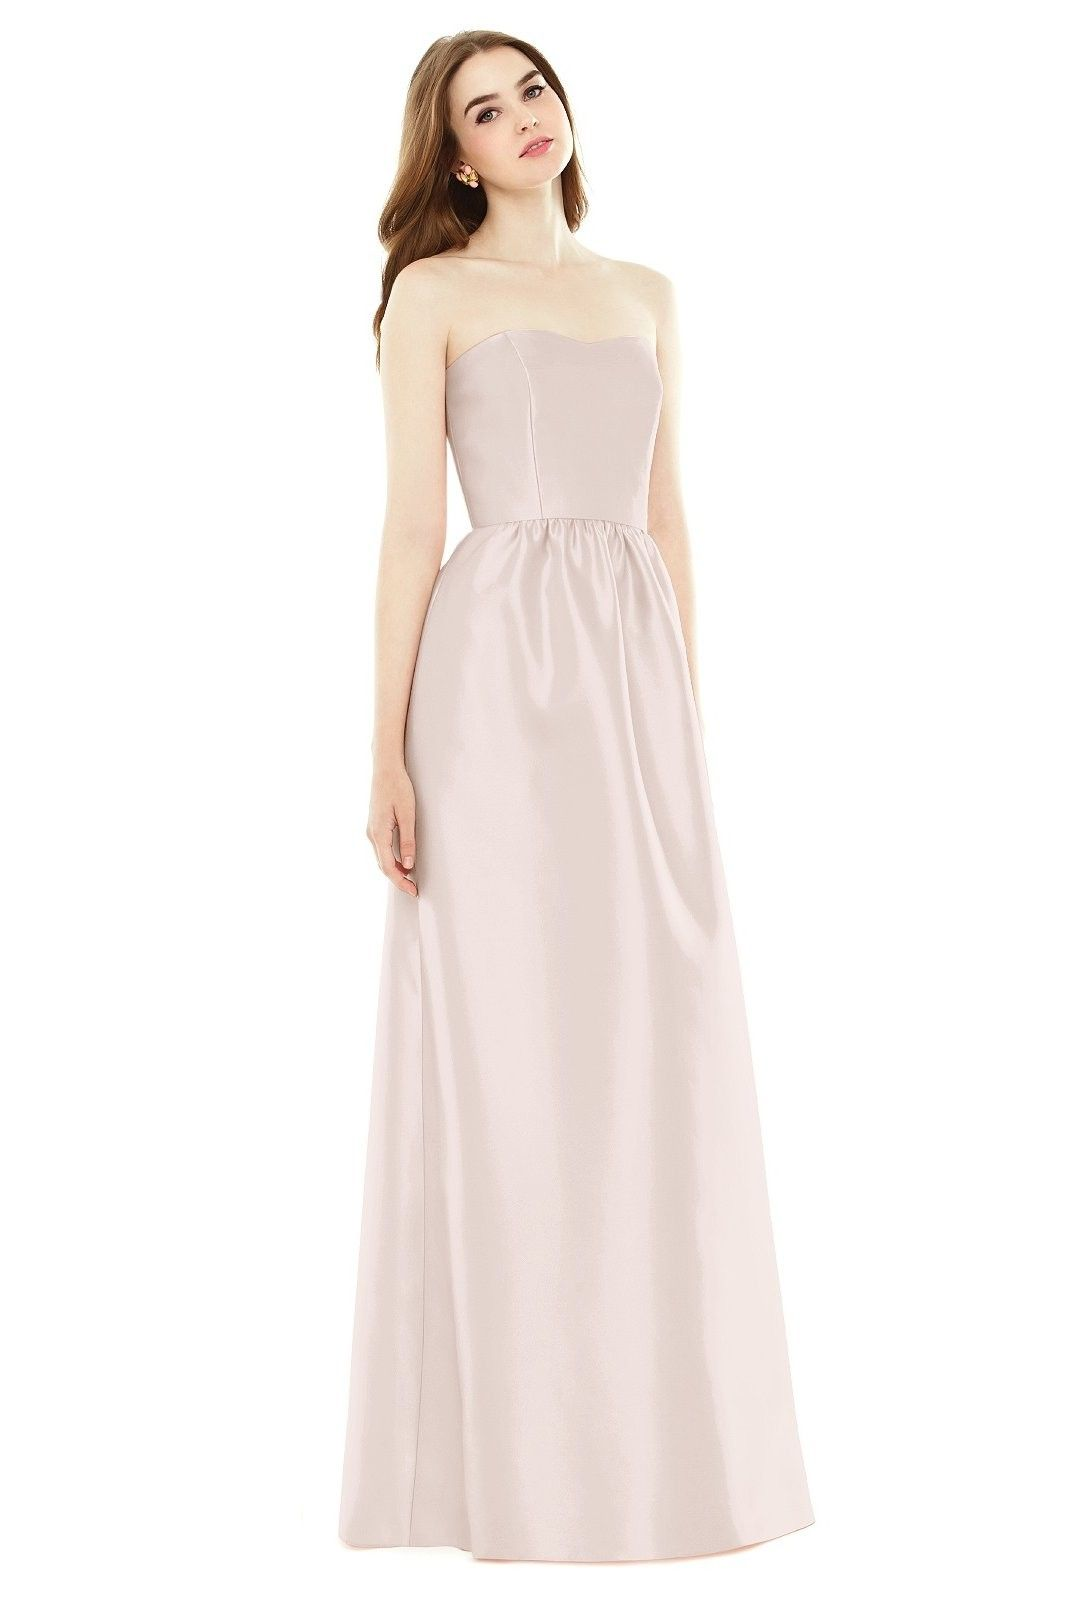 Alfred Sung Bridesmaids Dress Style D724 | Perfect Bridal | Alfred ...